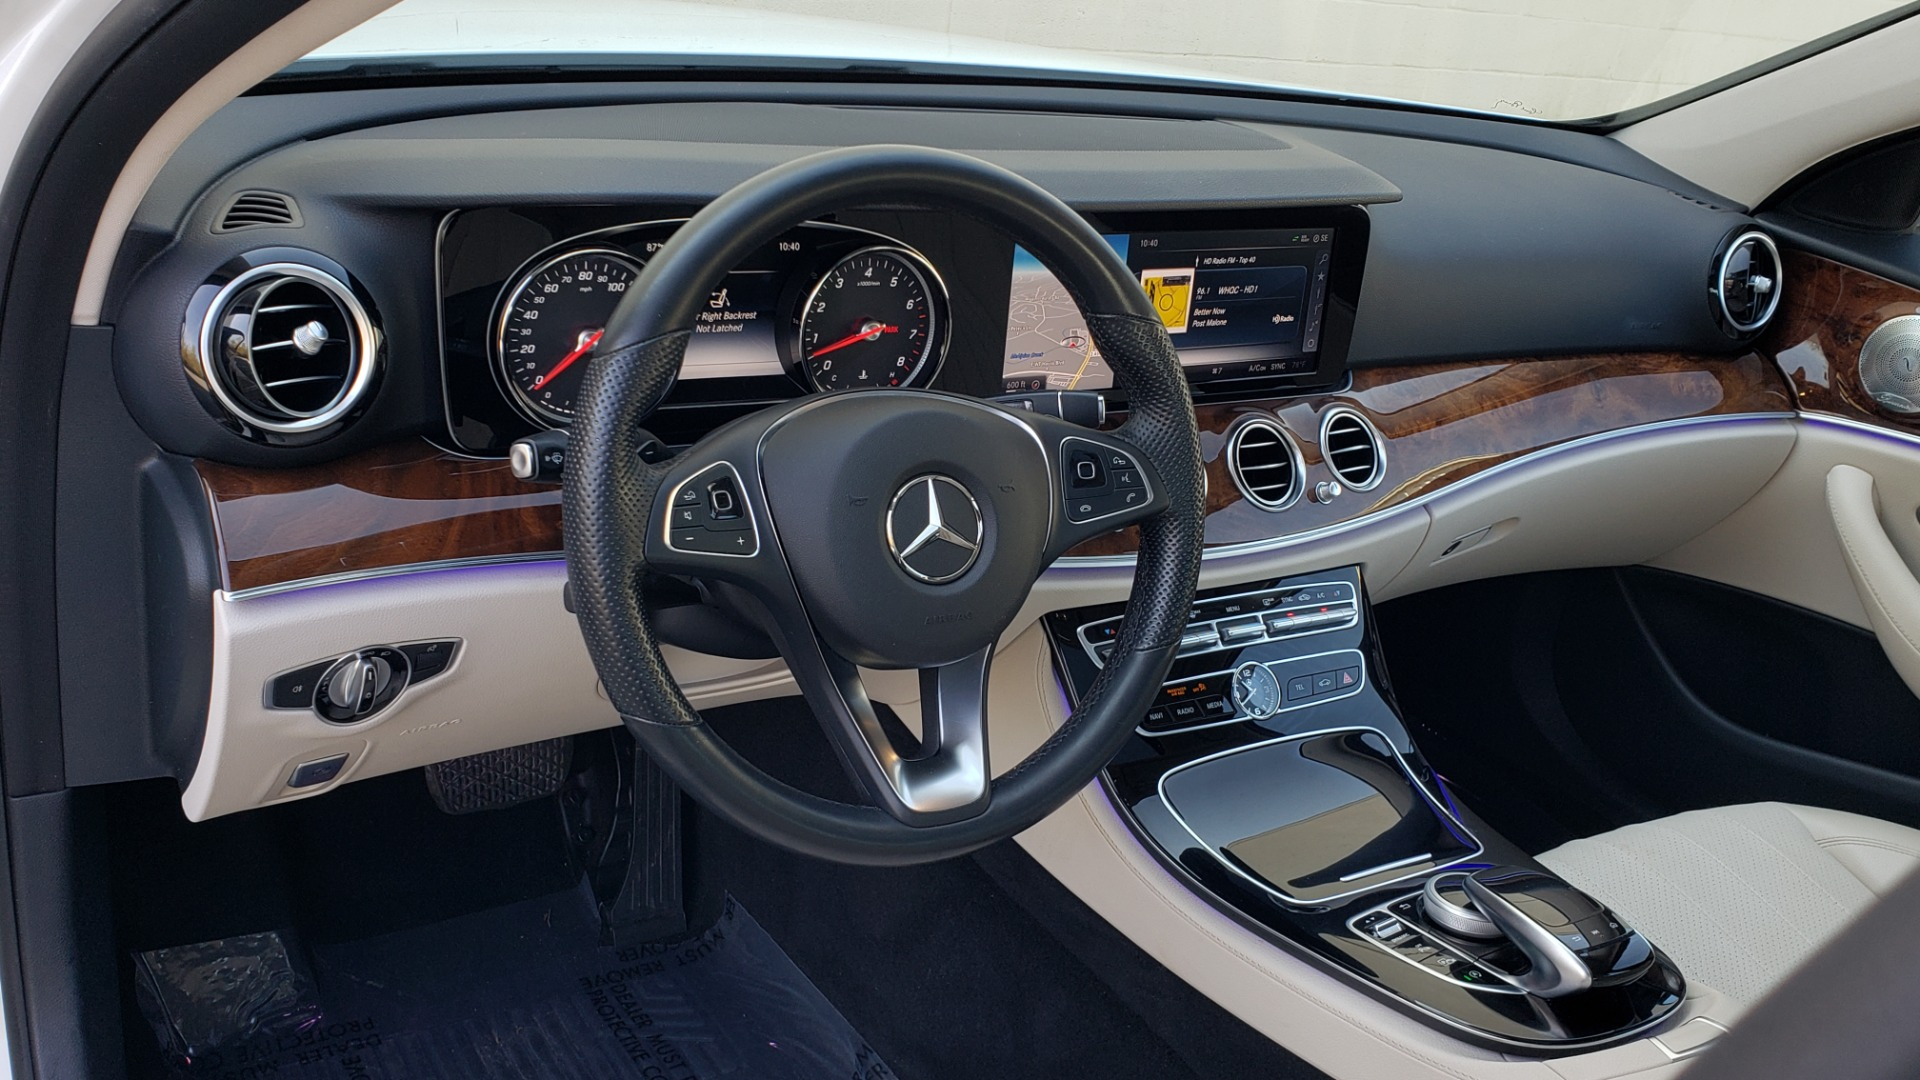 Used 2017 Mercedes-Benz E-Class E 300 PREMIUM / RWD / NAV / SNF / PARKING PILOT / REARVIEW / BURMESTER for sale Sold at Formula Imports in Charlotte NC 28227 32